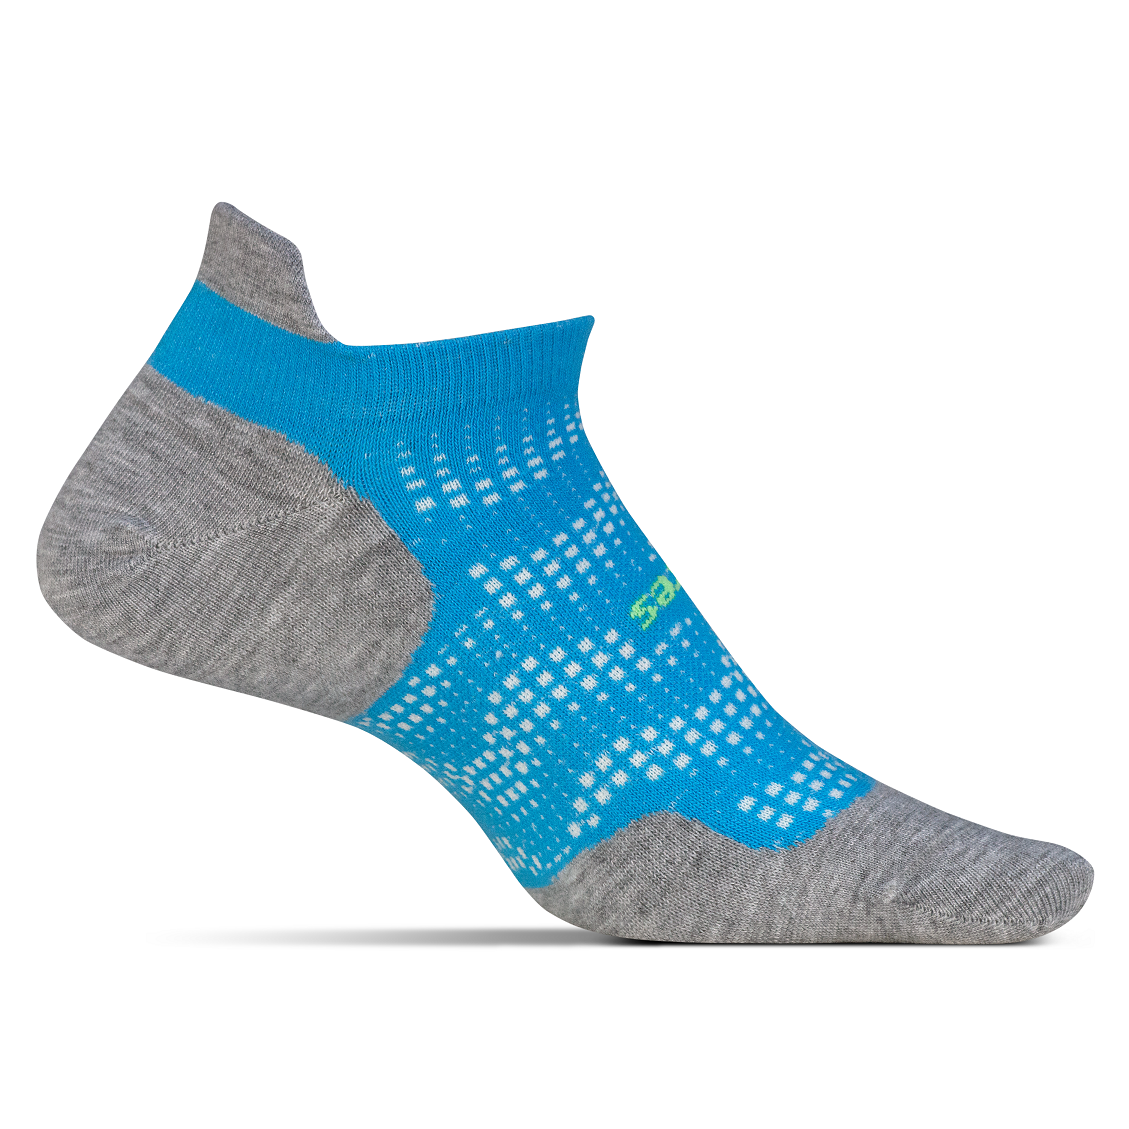 Feetures High Performance Ultra Light No Show Tab Socks - Tropical Blue